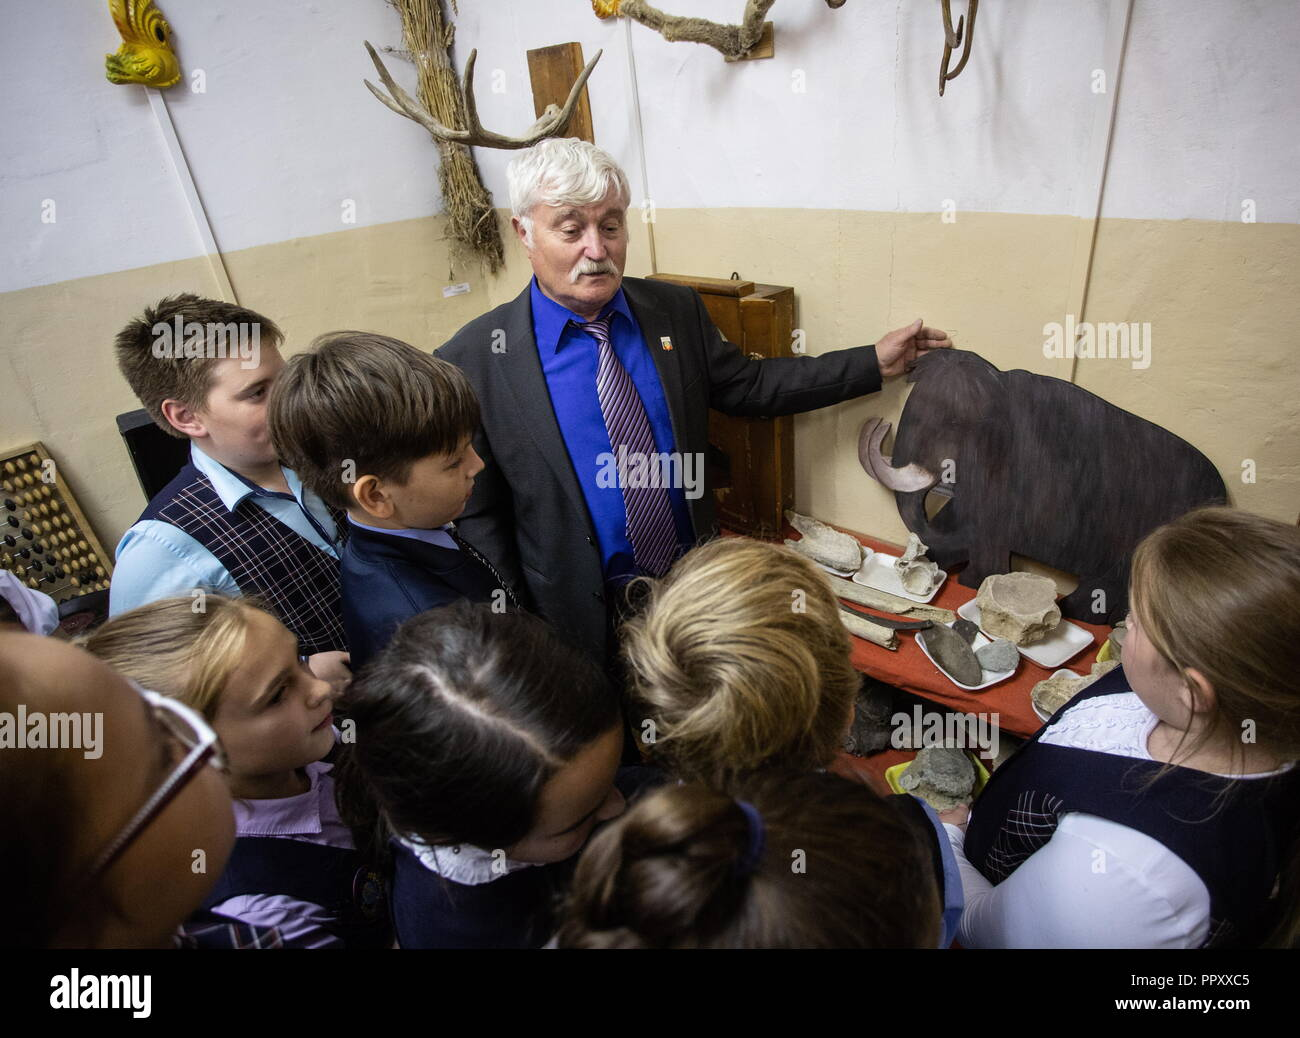 Russia. 27th Sep, 2018. OMSK REGION, RUSSIA - SEPTEMBER 27, 2018: History and social studies teacher Yakov Savenok, 65, with students in a local history museum in the village of Bogoslovka. Dmitry Feoktistov/TASS Credit: ITAR-TASS News Agency/Alamy Live News - Stock Image